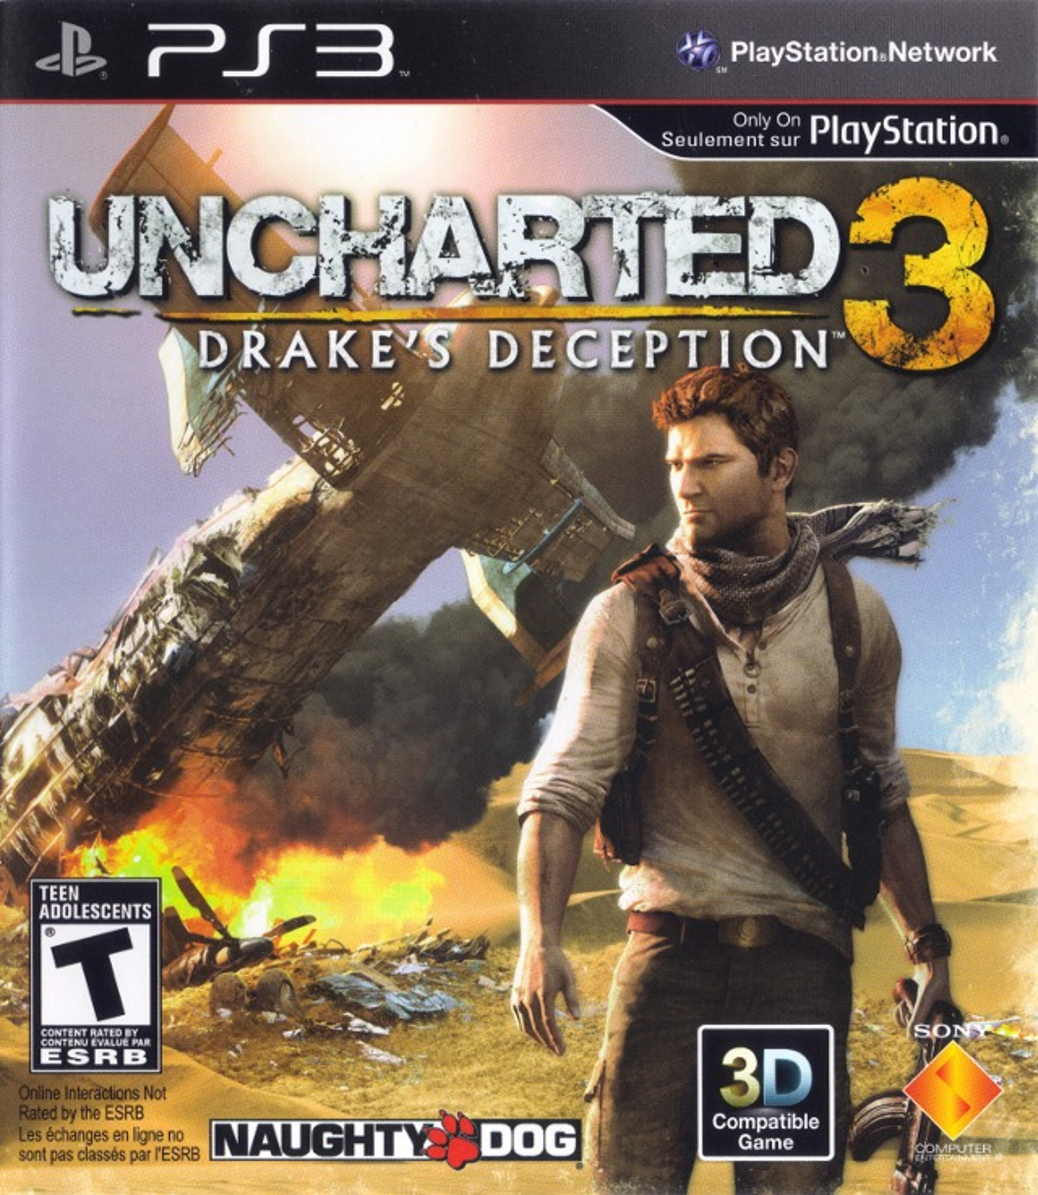 Uncharted 3 Drake's Deception - PlayStation 3 - North American Cover